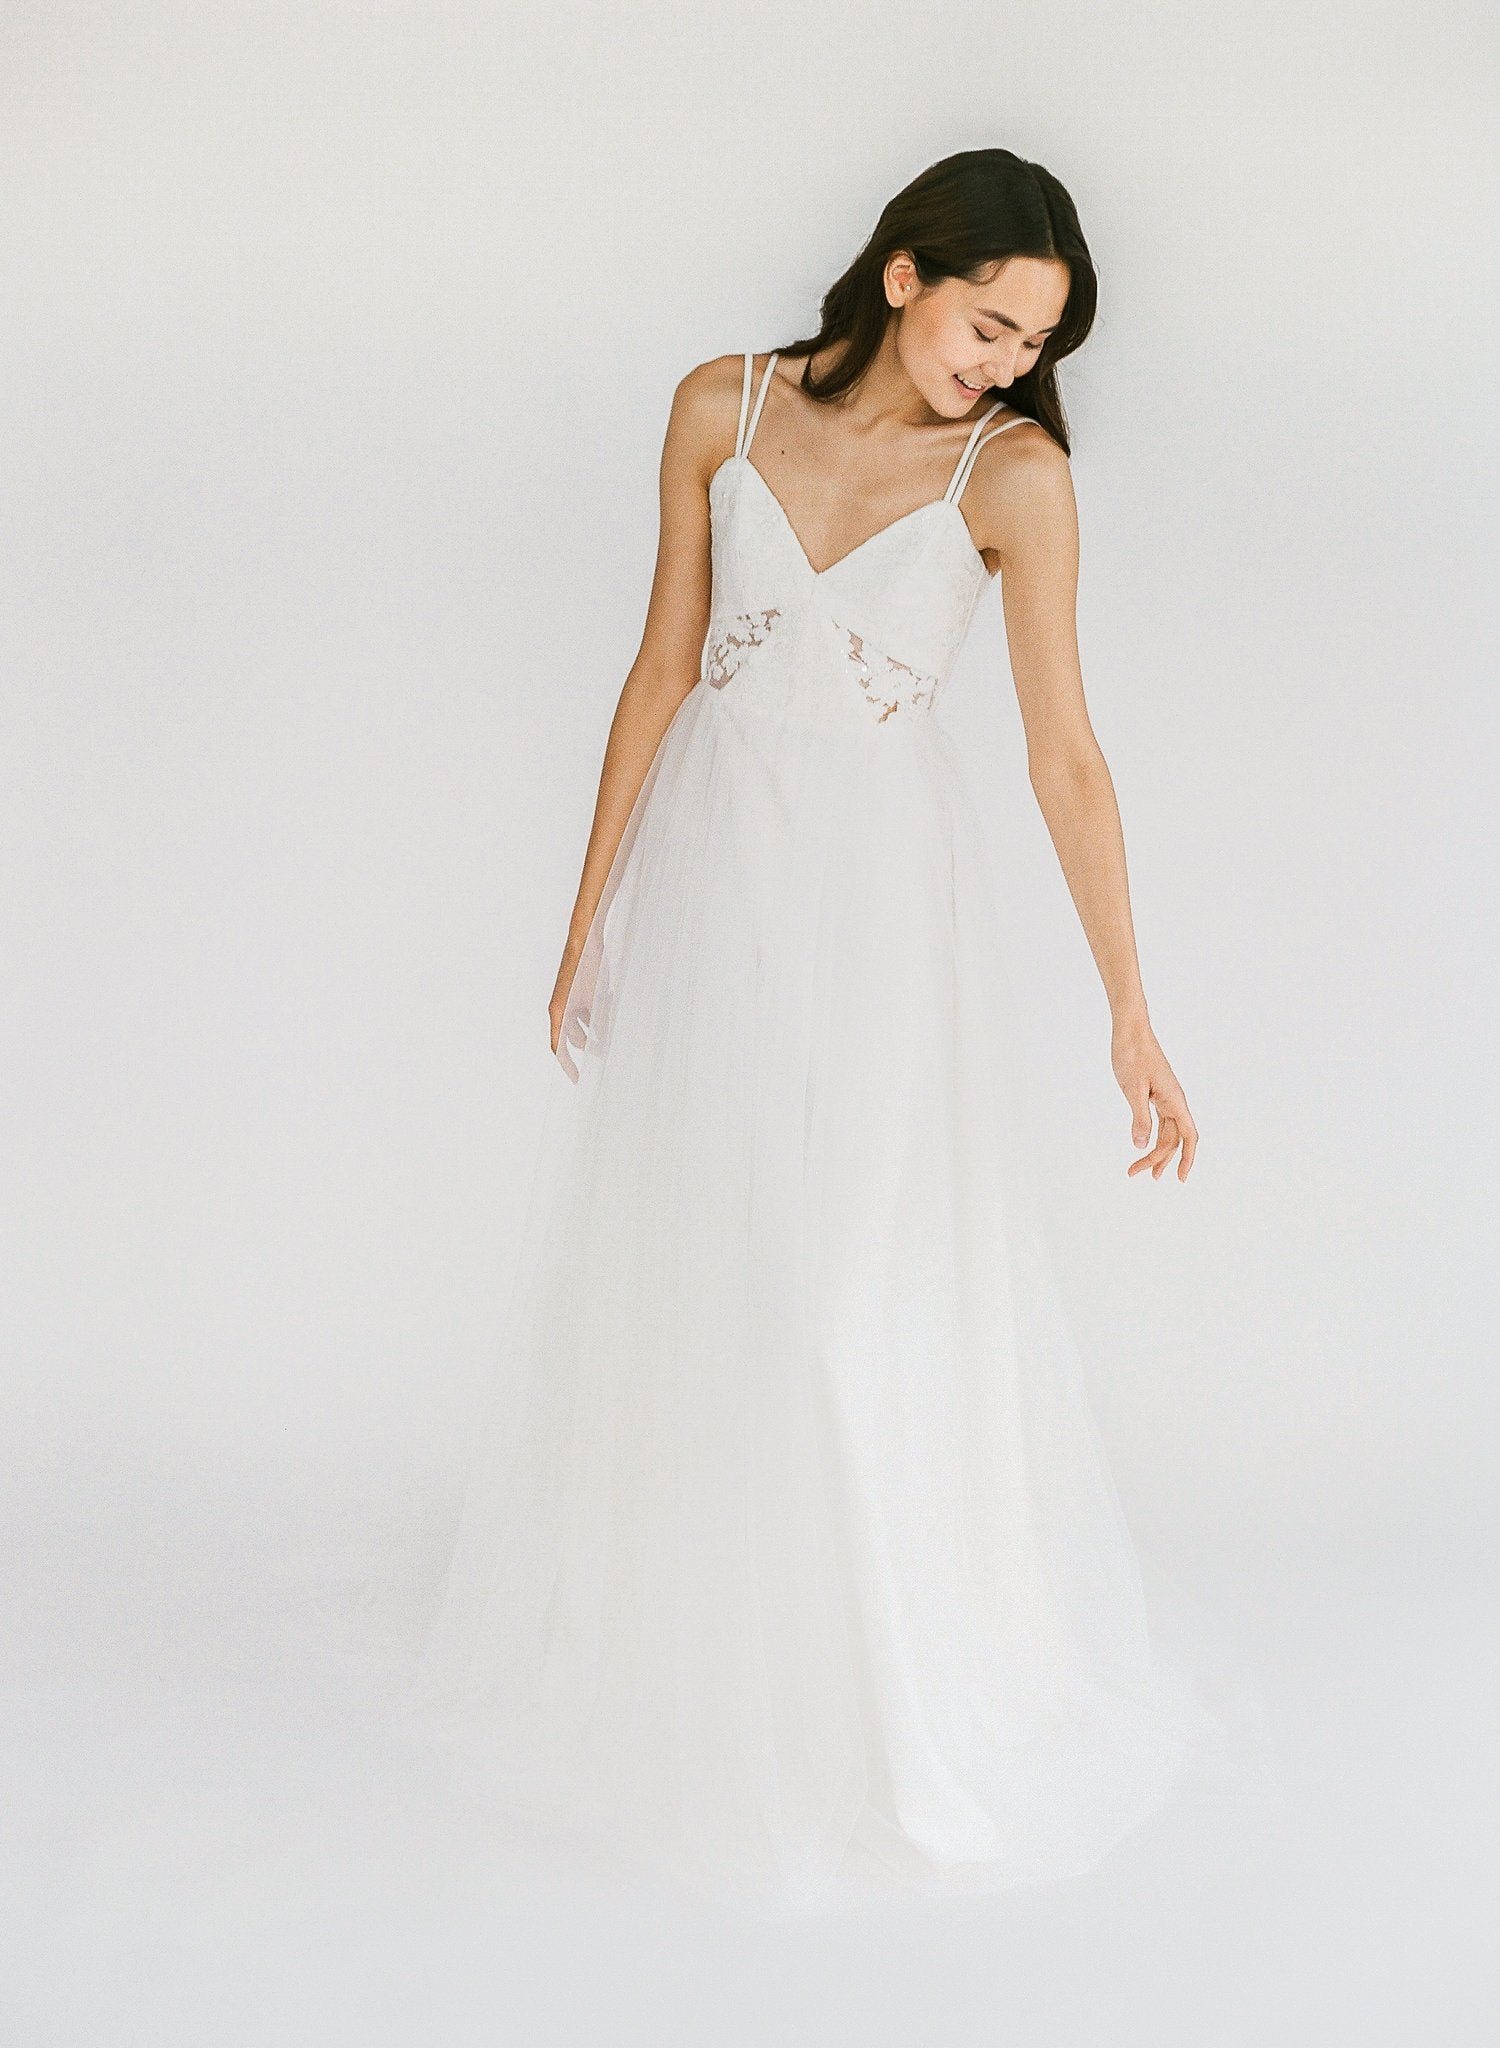 Unique non-traditional wedding gown with beaded lace, sheer geometric cutouts, comfortable double straps, and a tulle skirt